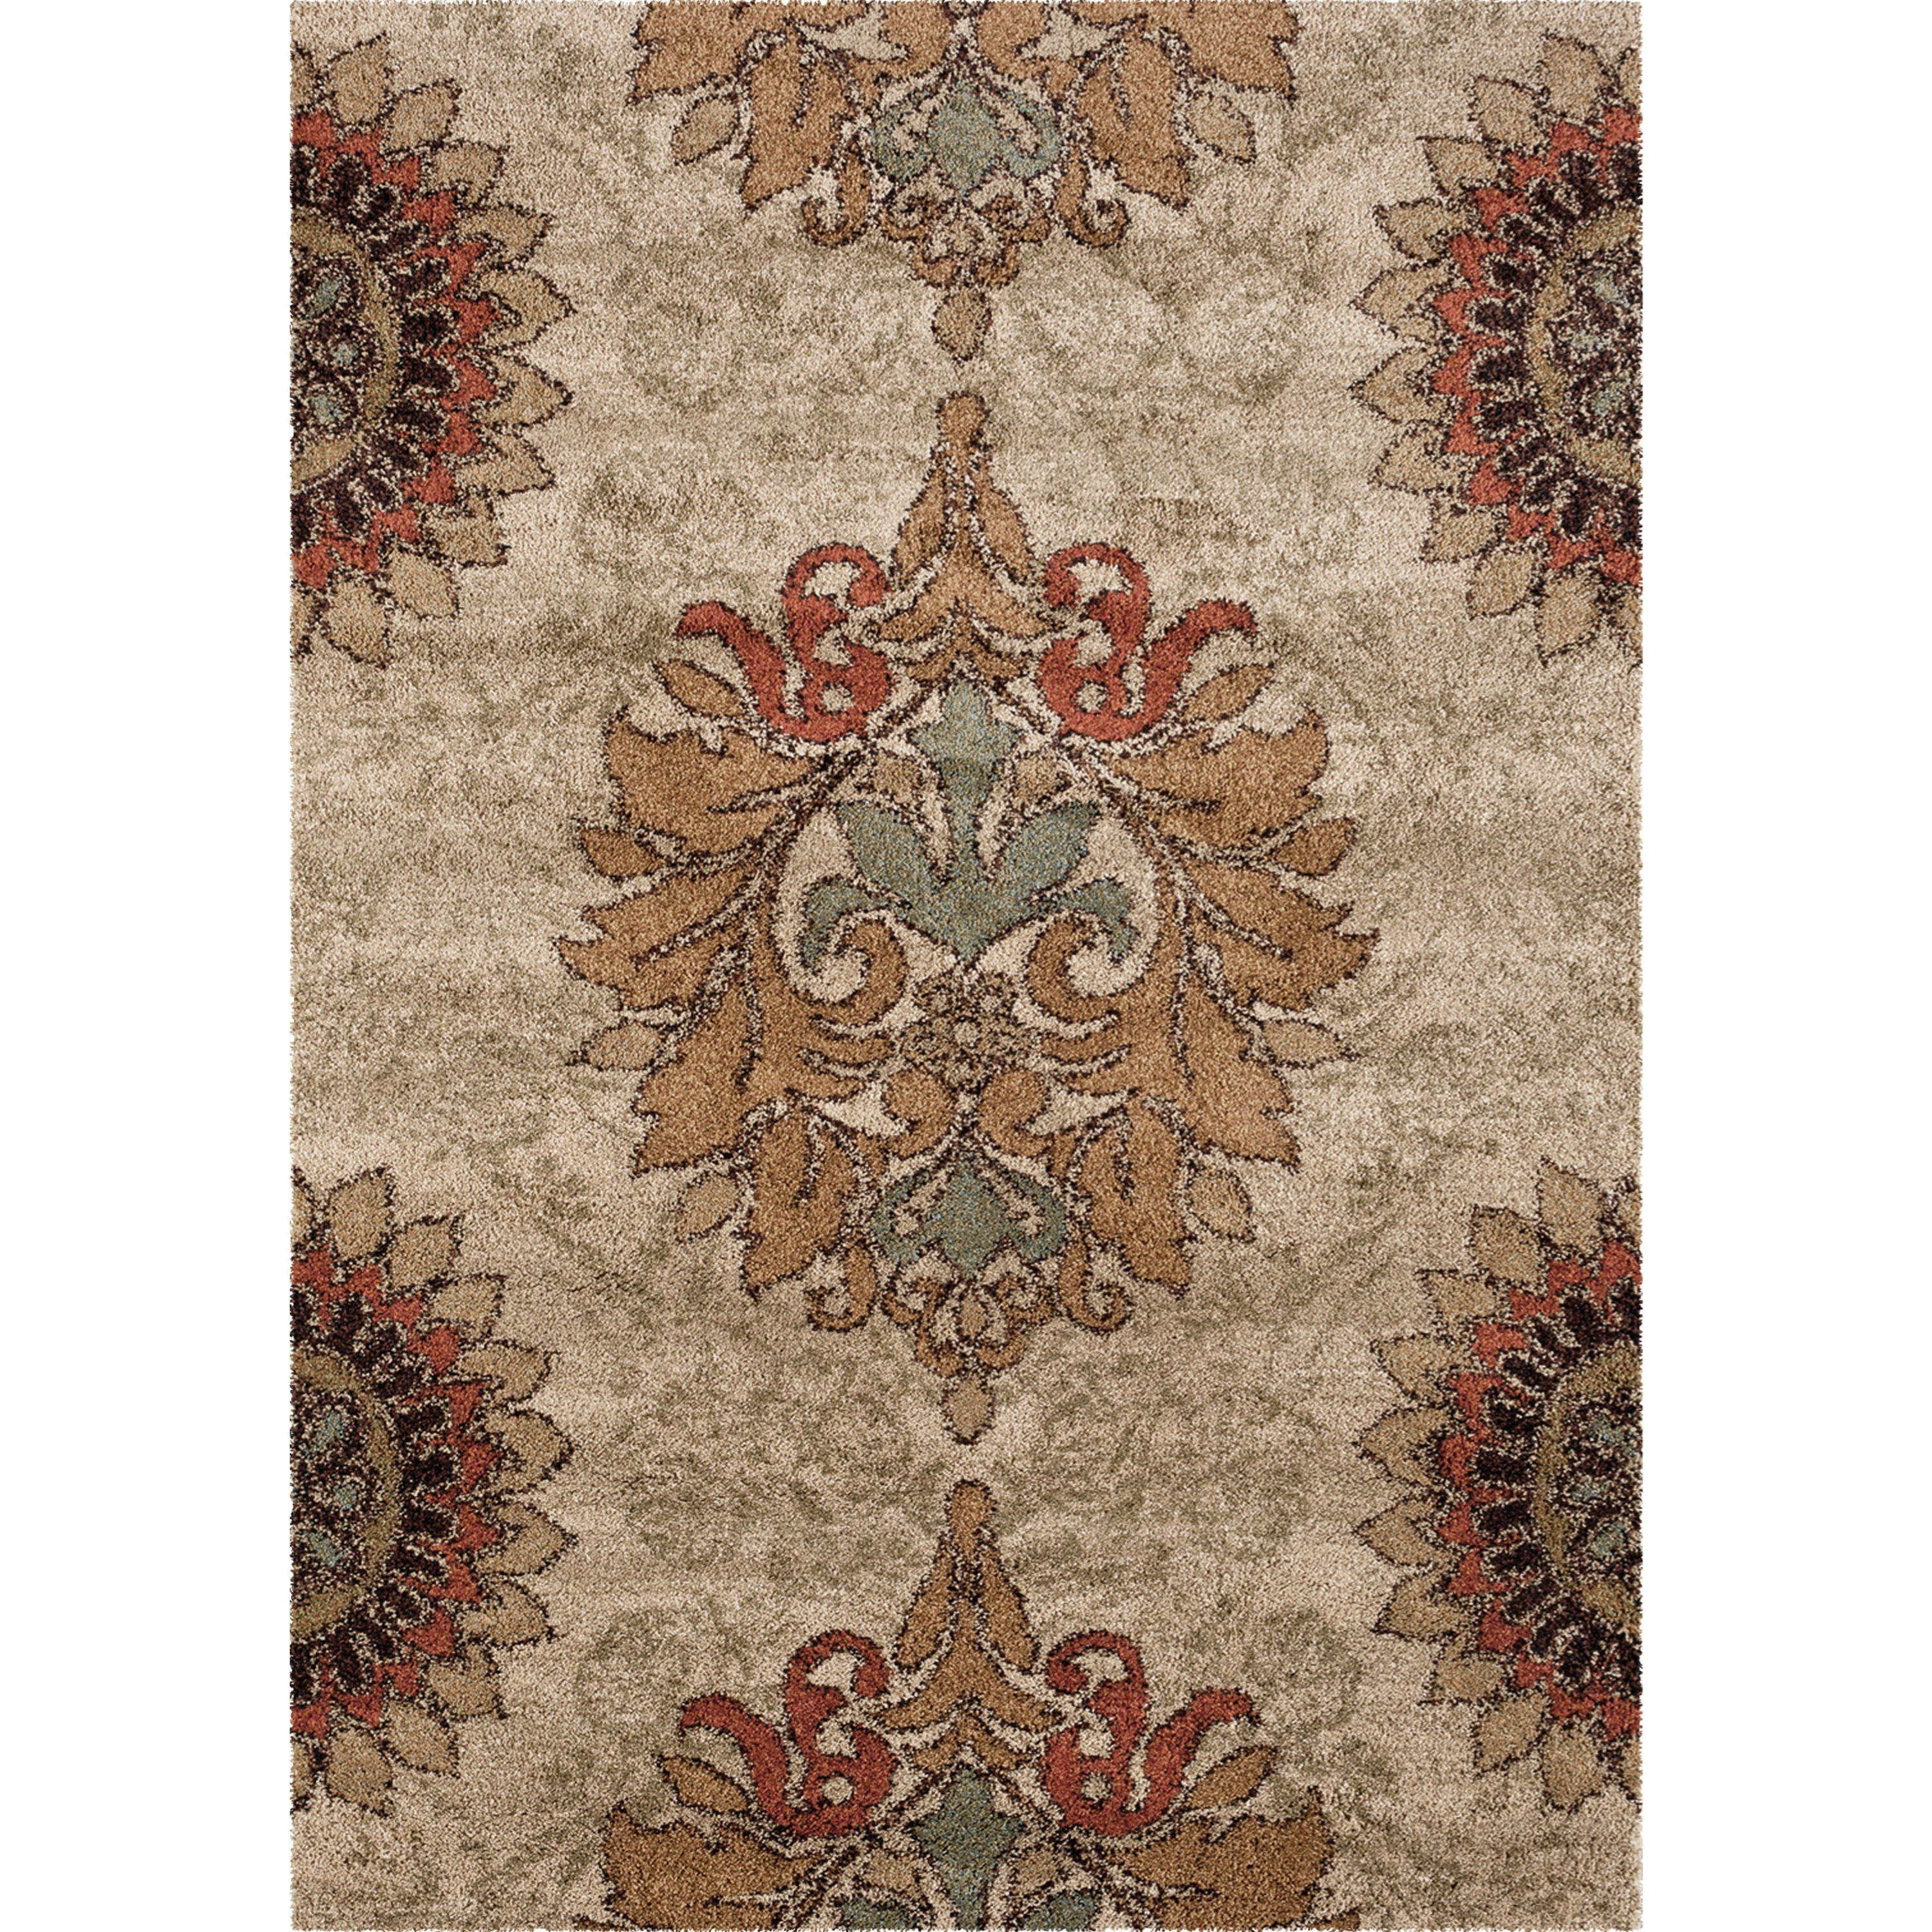 al stores rugs industries interesting art for deco flooring marcella carpet comfort design orian costco in cozy sheep huntsville rug wholesale pedestal maples charisma